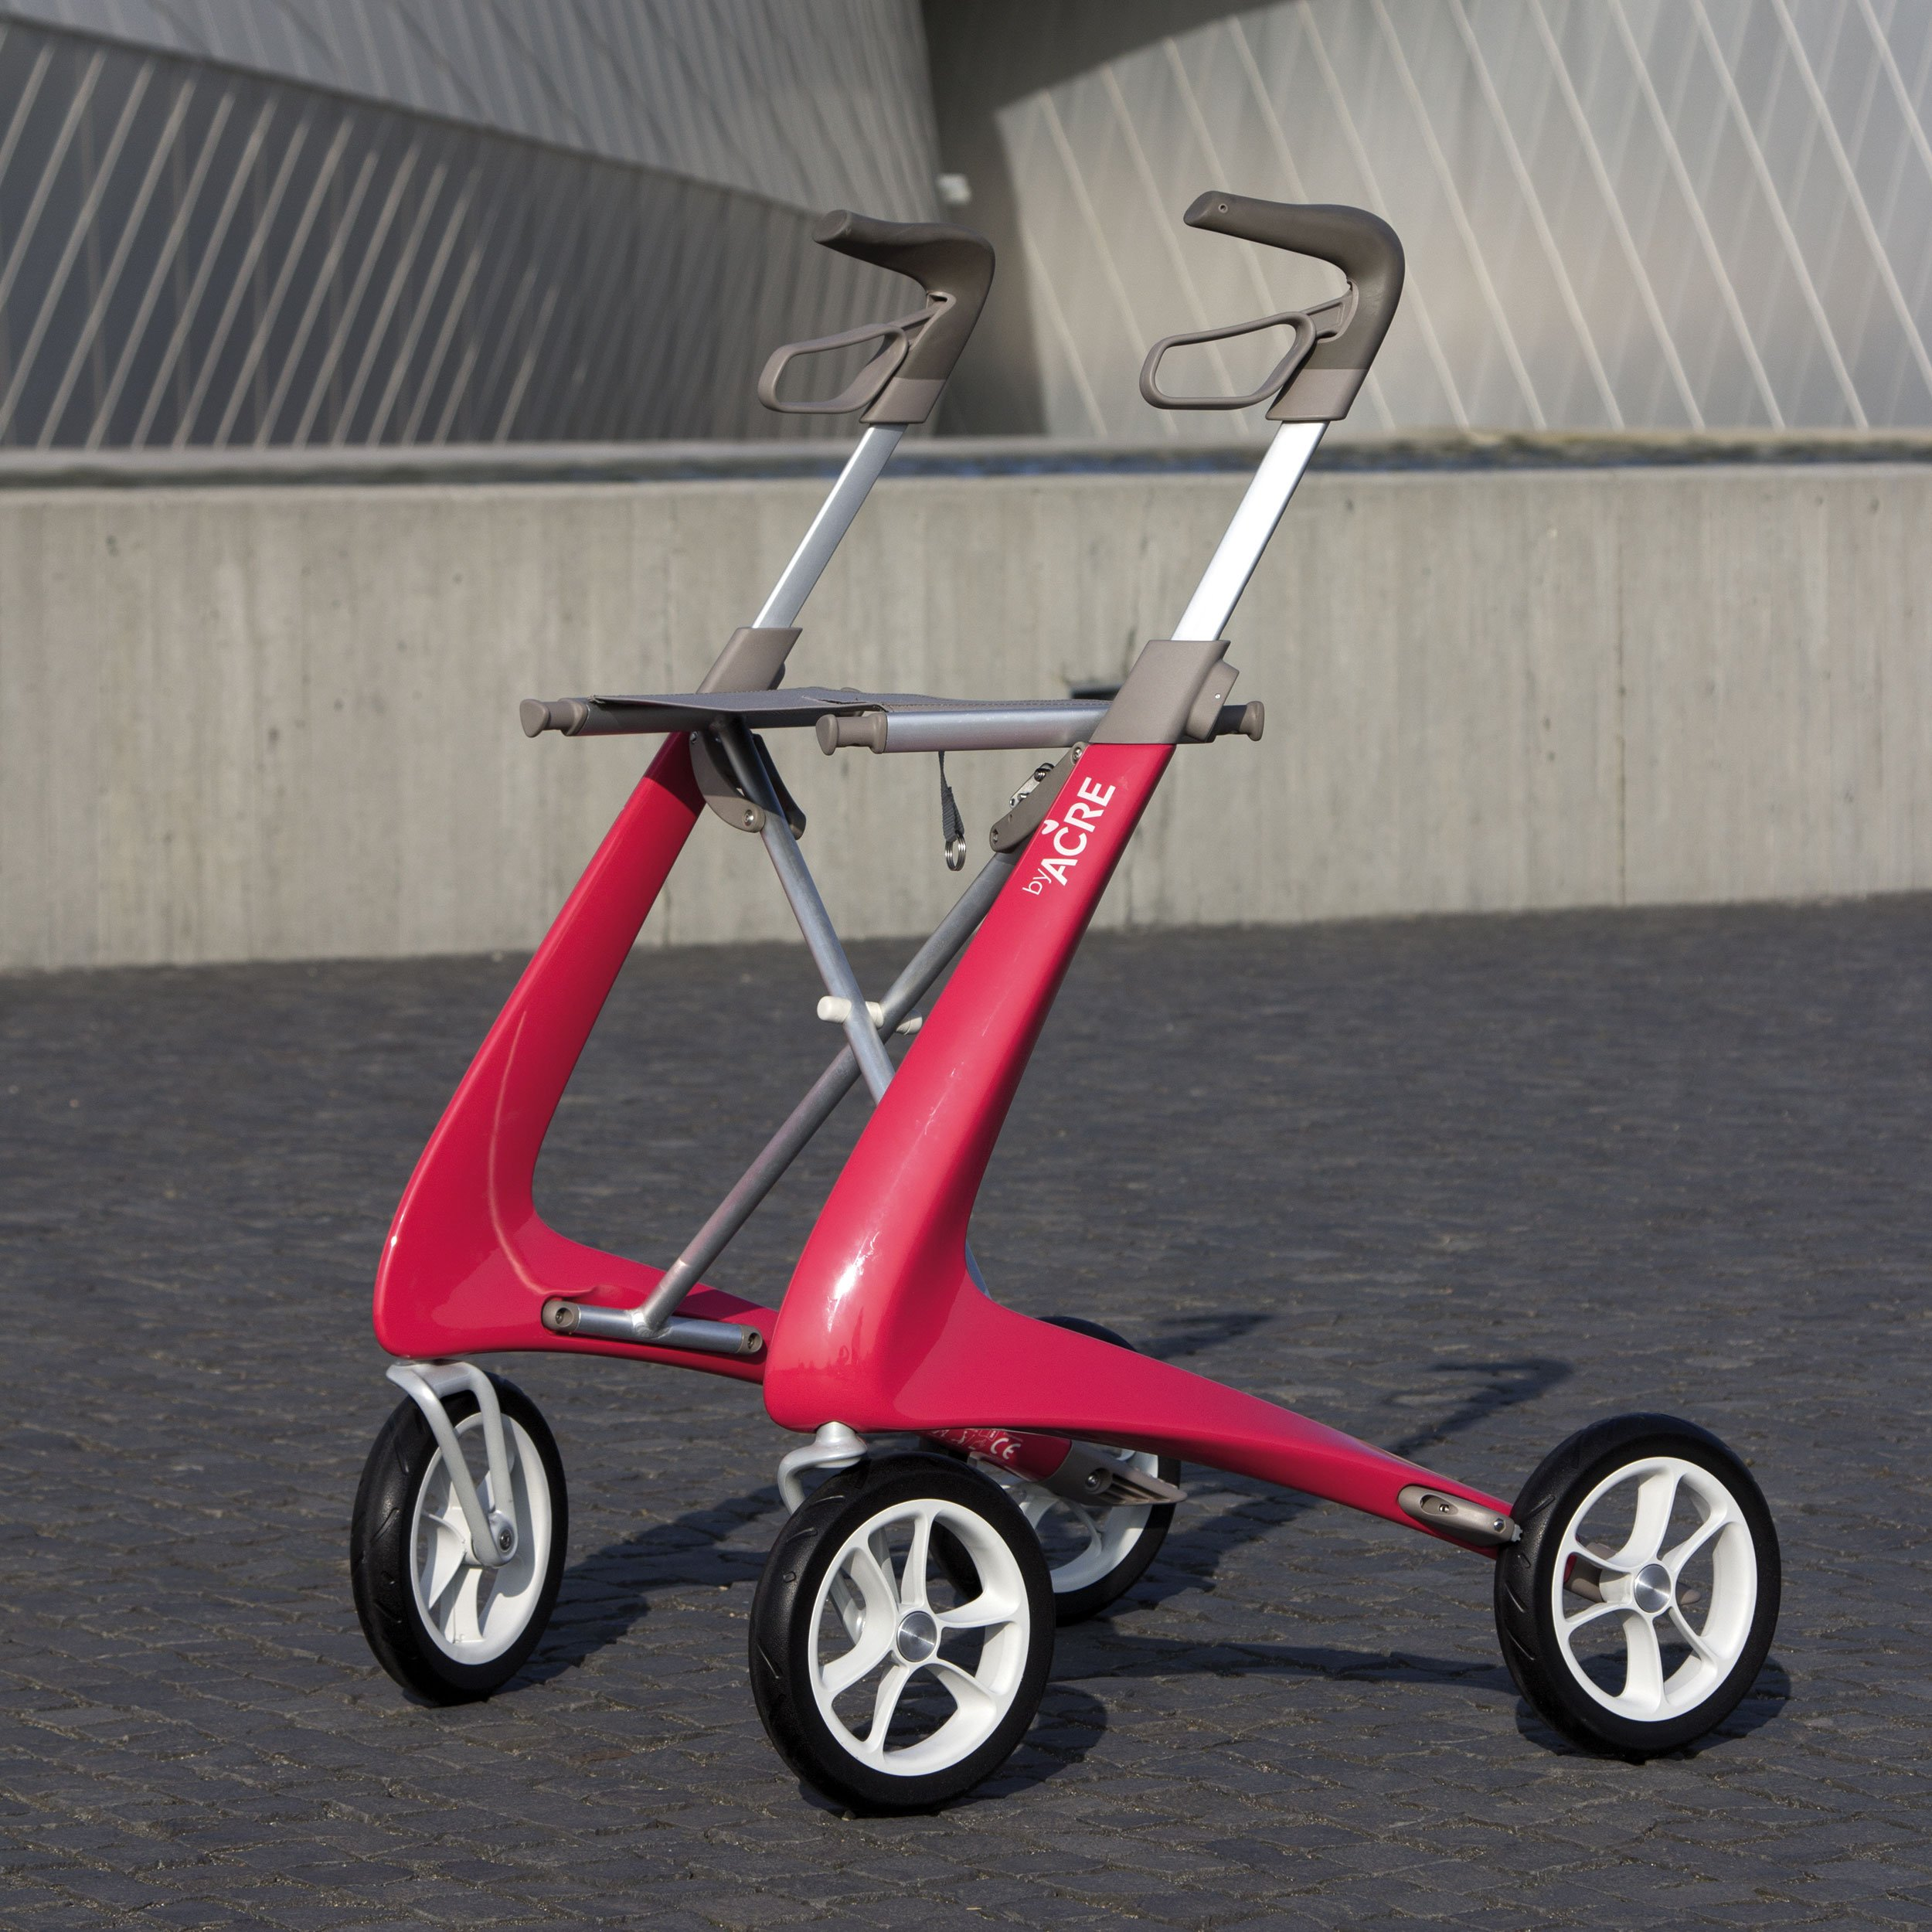 Red Carbon Ultralight Rollator byACRE - Seen in perspective at the Blue Planet in Copenhagen